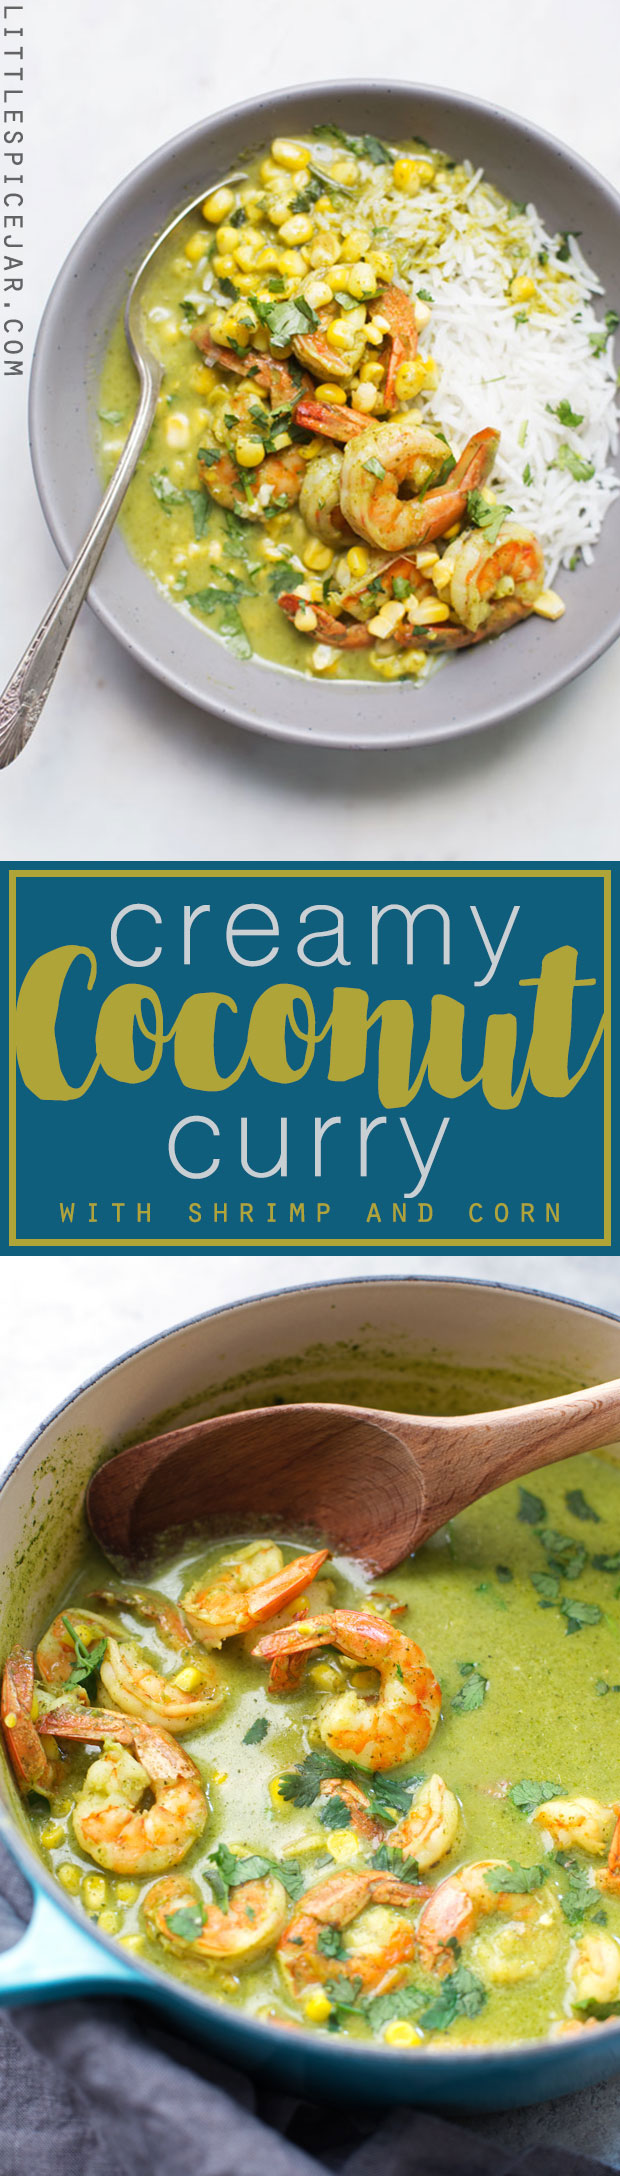 Creamy Coconut Curry with Shrimp + Corn - made with a homemade curry paste that's as simple as blending a few ingredients! It's flavorful and weeknight friendly! #greencurry #shrimpcurry #coconutcurry | Littlespicejar.com